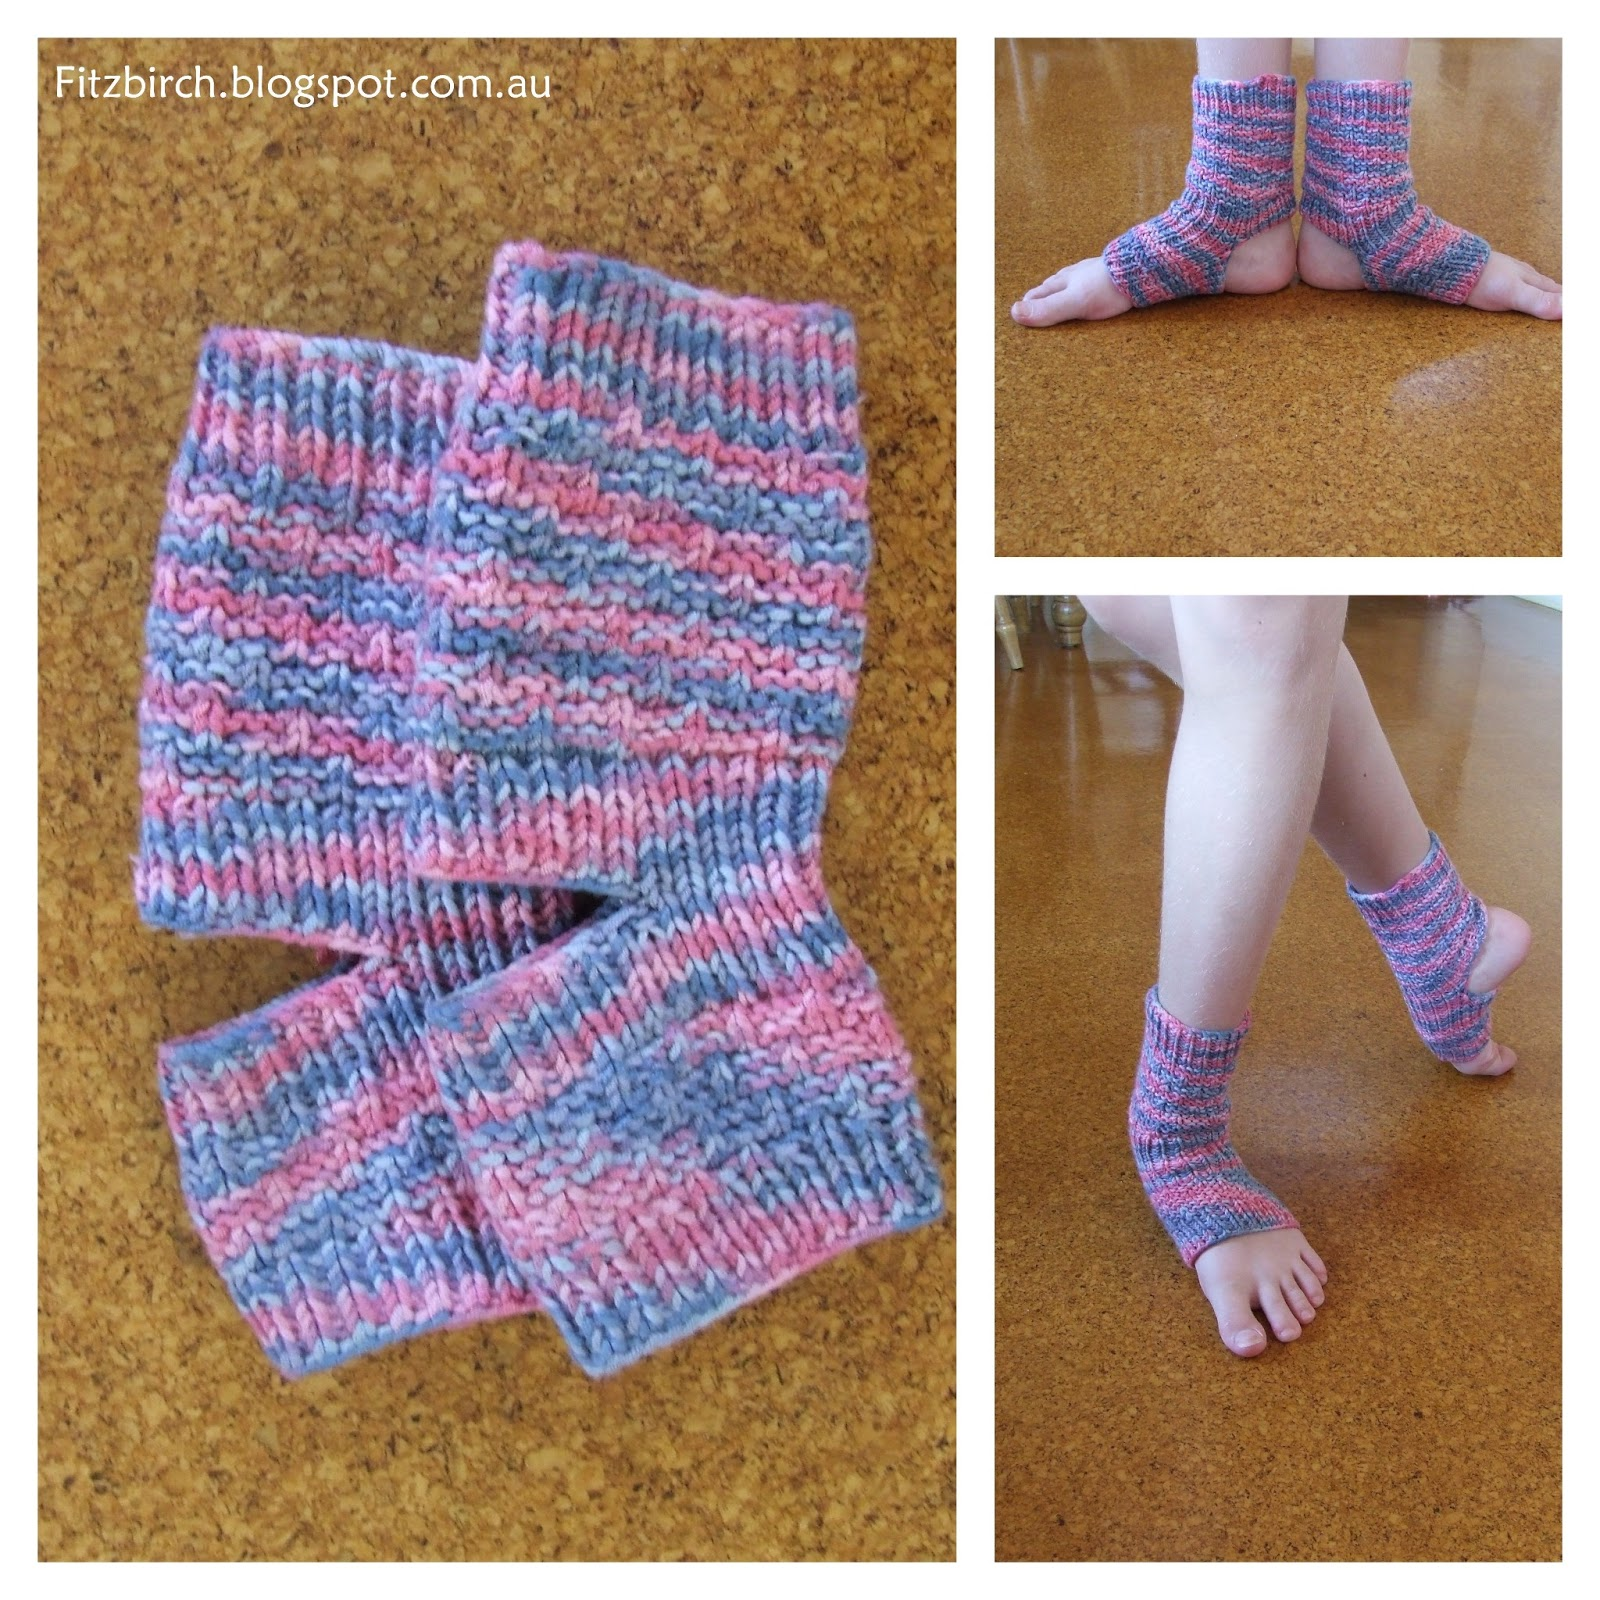 Knitting Pattern For Yoga Socks : FitzBirch Crafts: Yoga Socks for a Ballerina